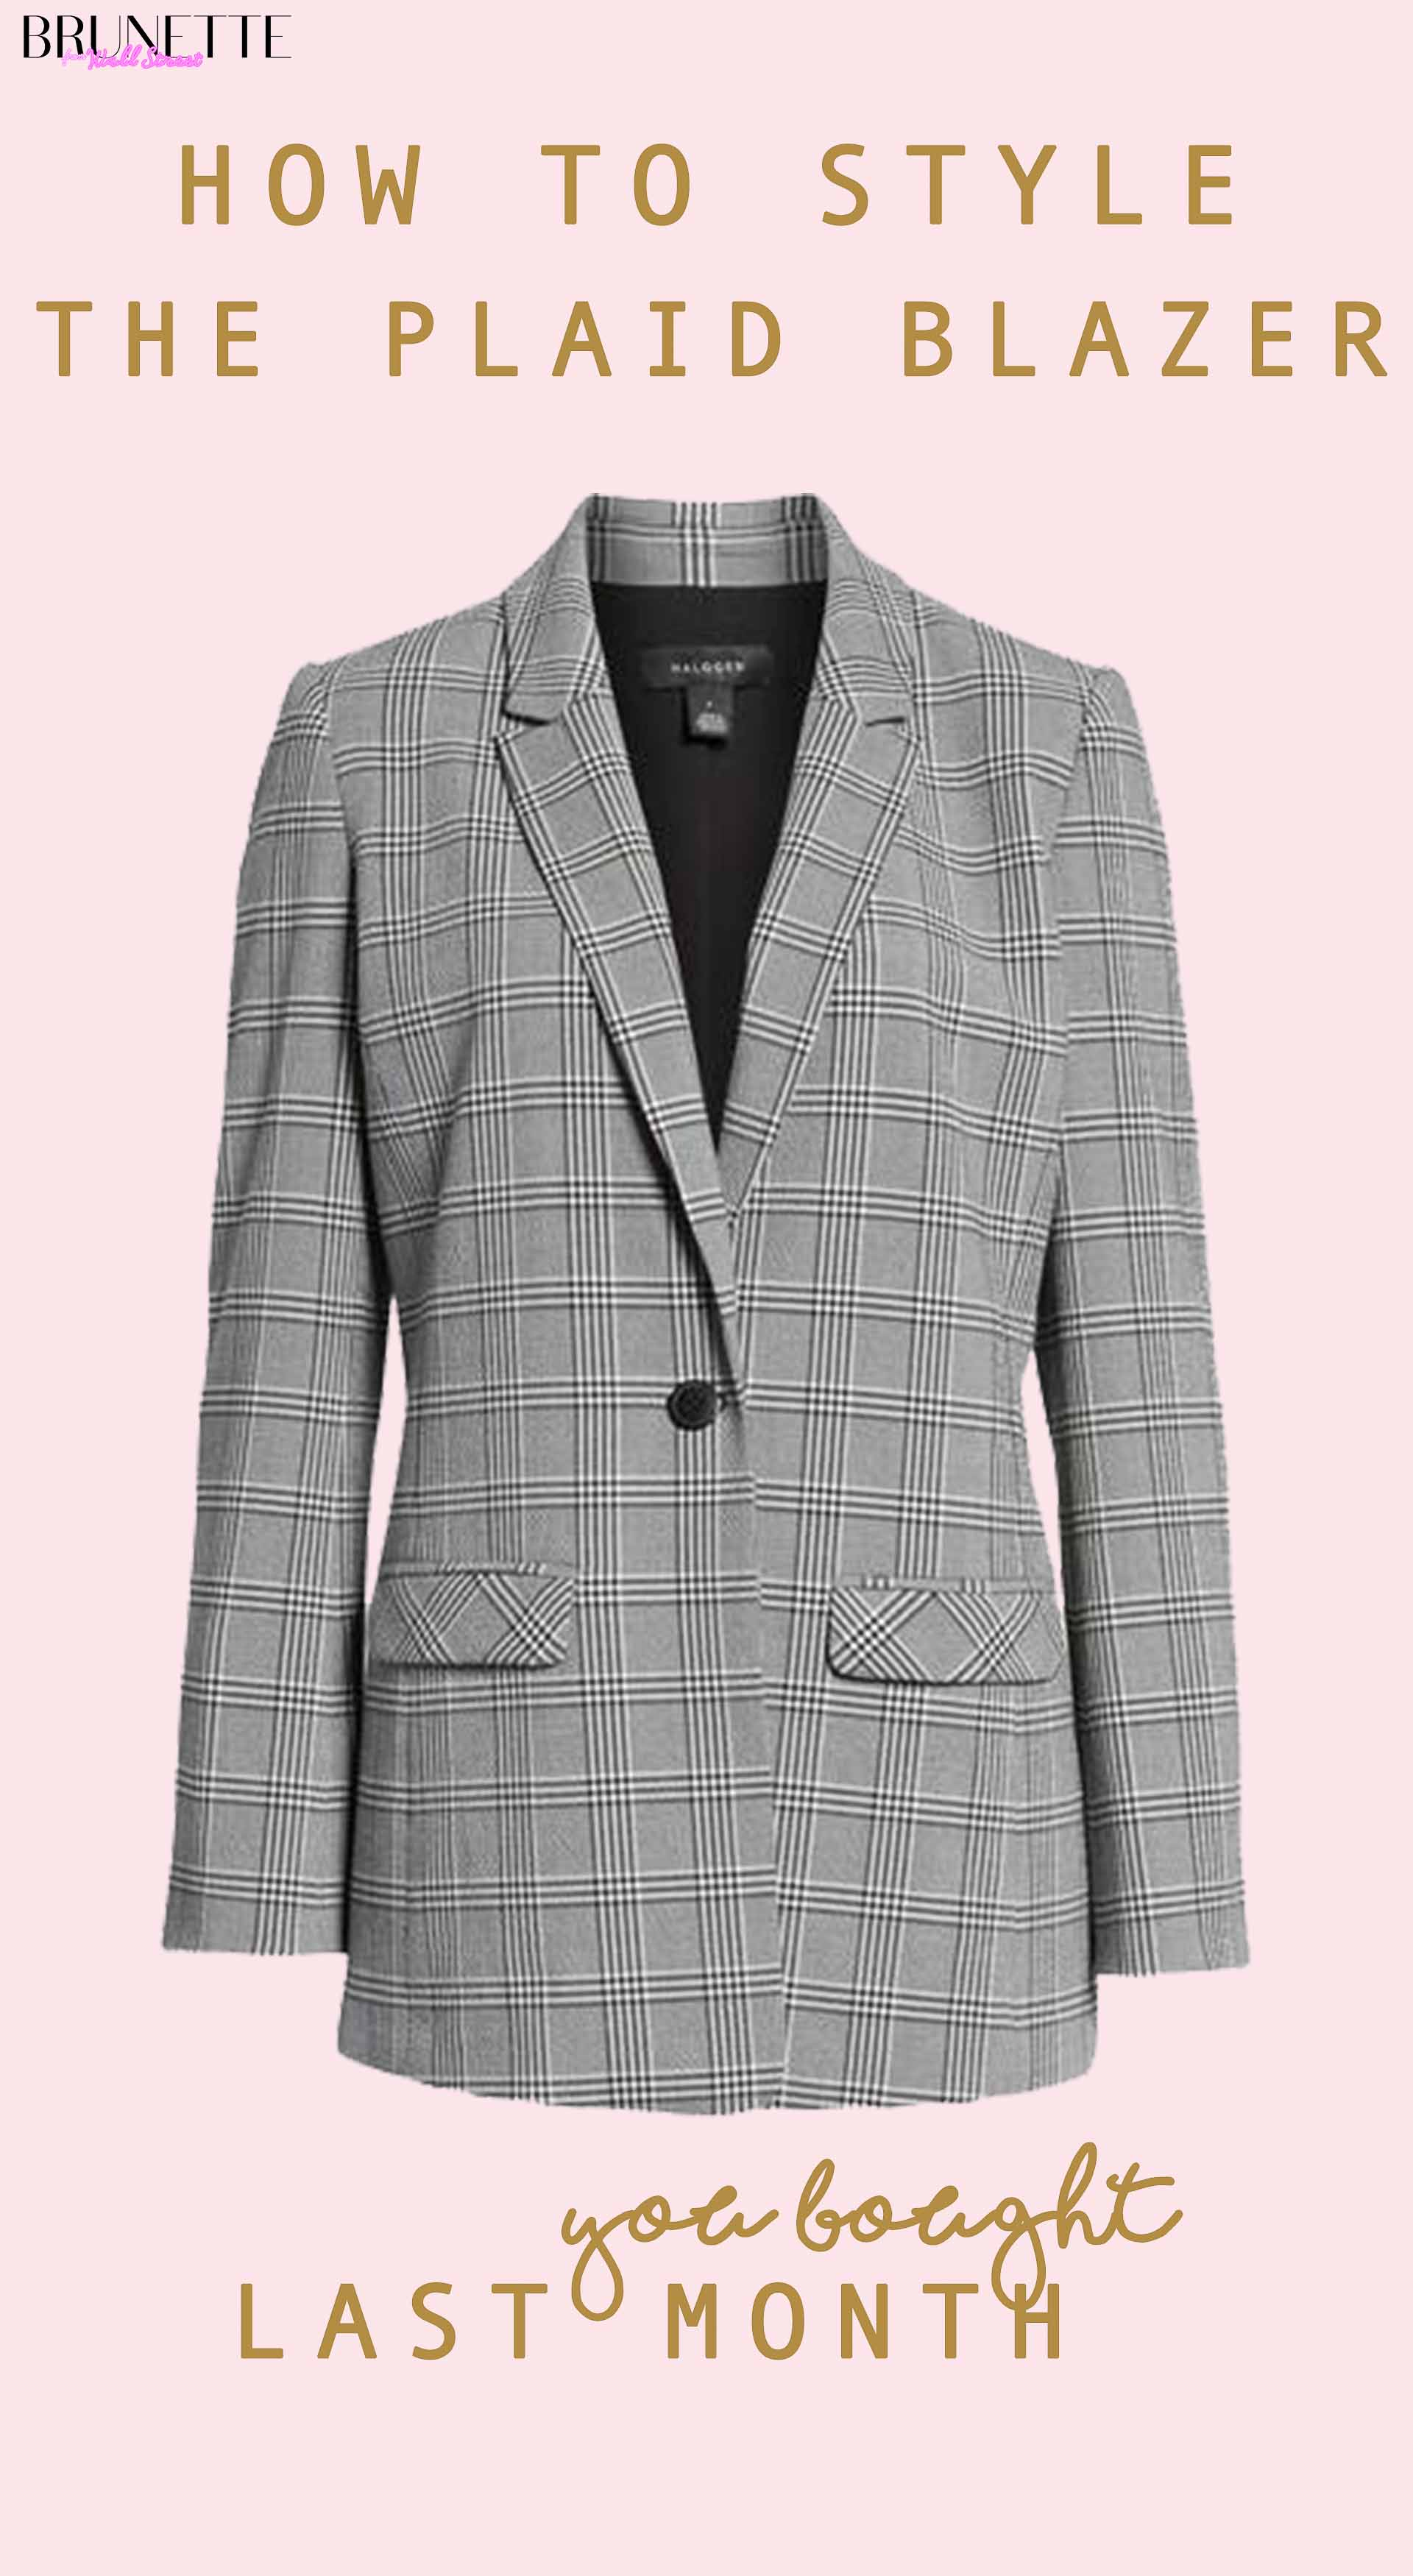 Grey plaid blazer with text overlay How to stye Plaid blazer You bought last month